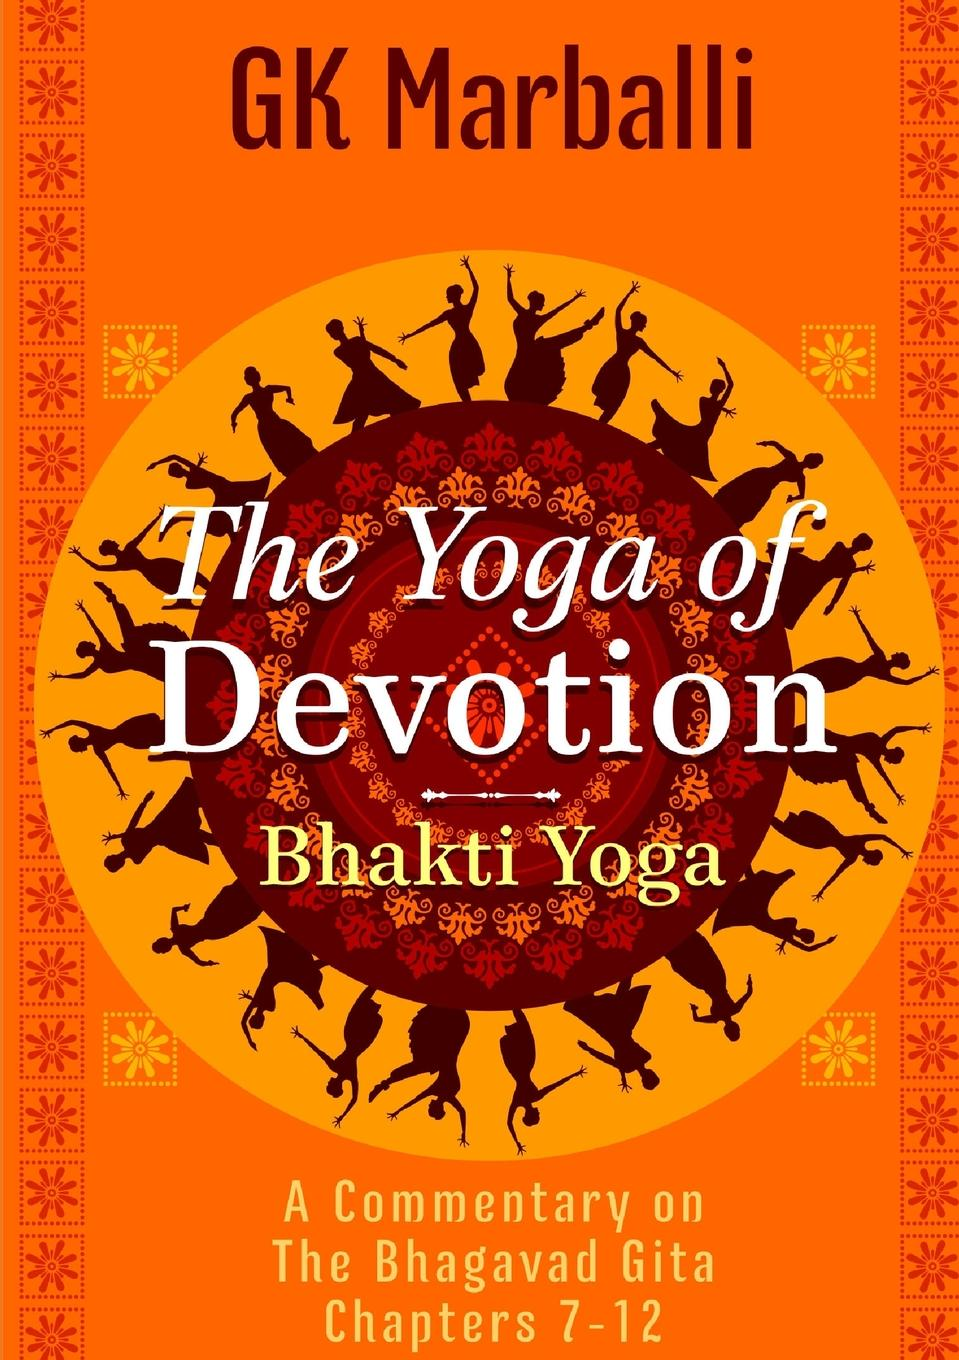 Фото - GK Marballi The Yoga Of Devotion (Bhakti Yoga) - A Commentary On The Bhagavad Gita Chapters 7-12 debashis chatterjee timeless leadership 18 leadership sutras from the bhagavad gita